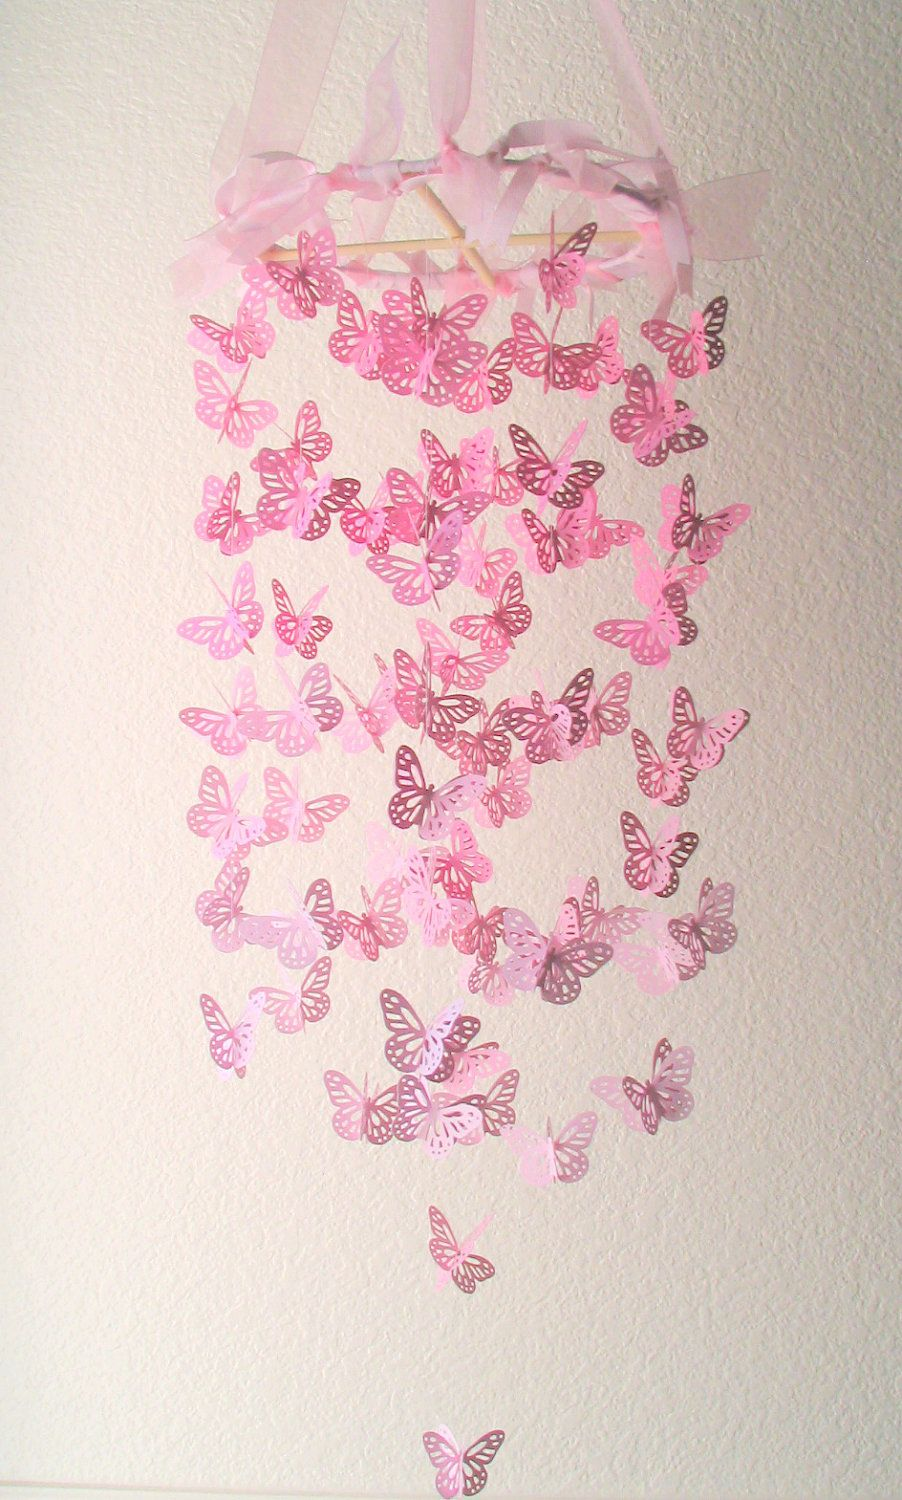 Pink butterfly chandelier monarch butterfly chandelier mobile pink butterfly chandelier monarch butterfly chandelier mobile butterfly mobile nursery mobile baby arubaitofo Gallery